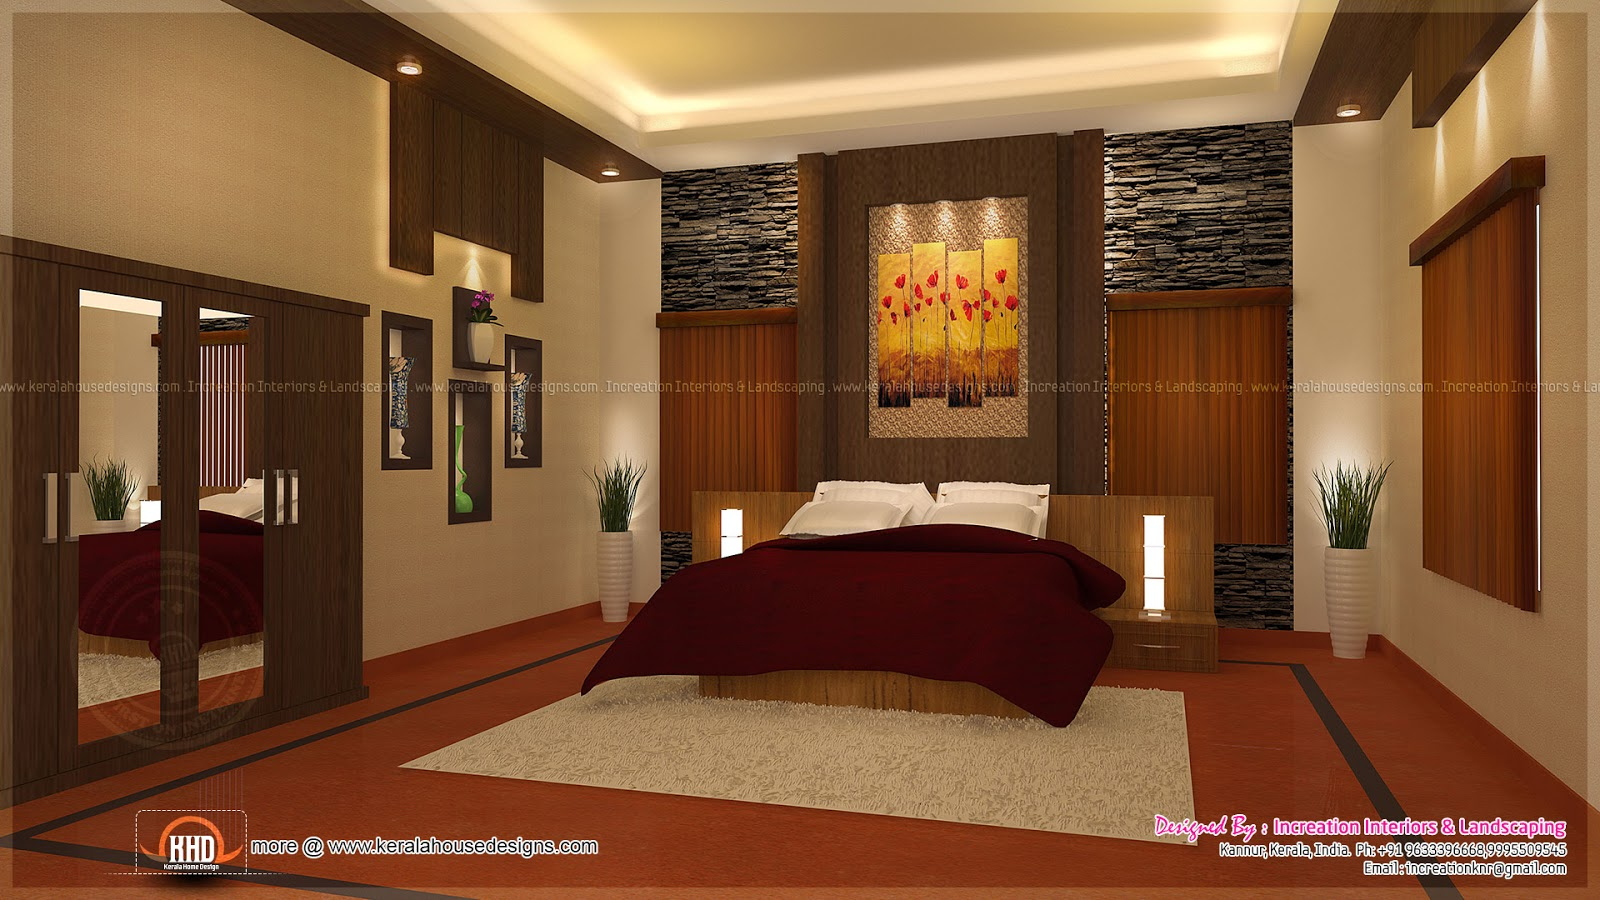 House interior ideas in 3d rendering kerala home design for Indoor design in home